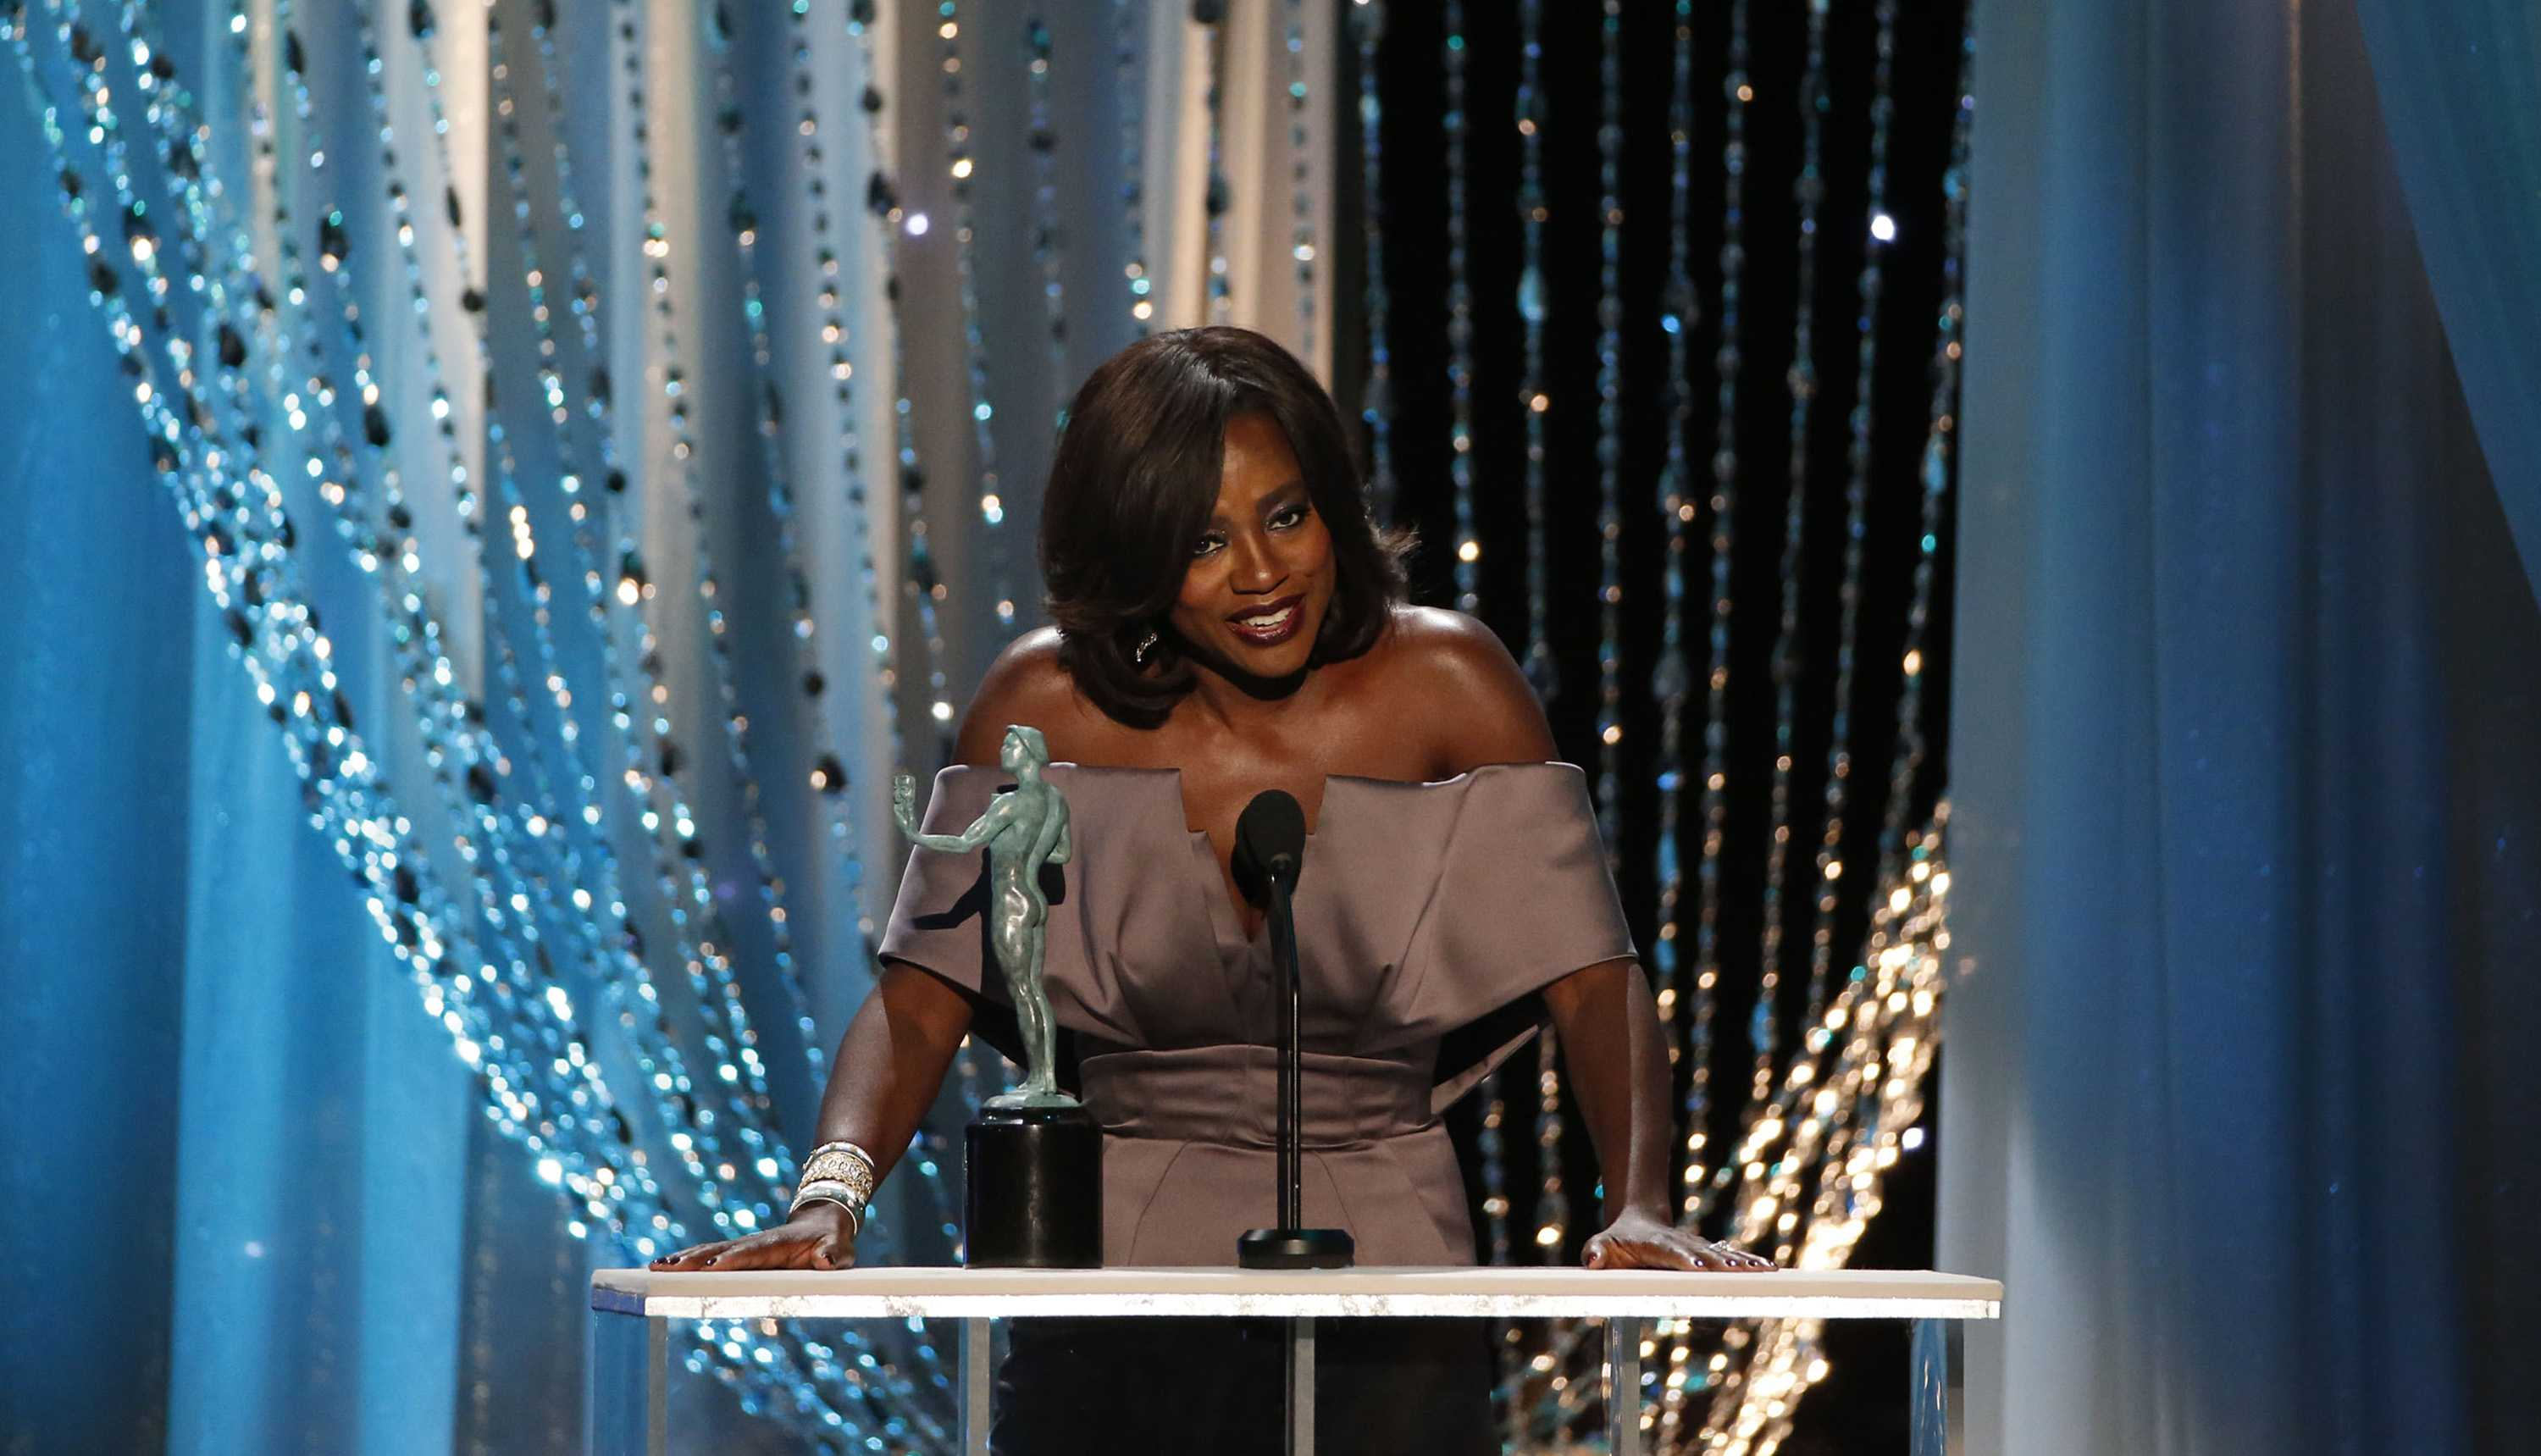 Viola Davis on stage at the 22nd Annual Screen Actors Guild Awards at the Shrine Auditorium in Los Angeles on Saturday, Jan. 30, 2016. Photo Credit,  (Robert Gauthier/Los Angeles Times/TNS)